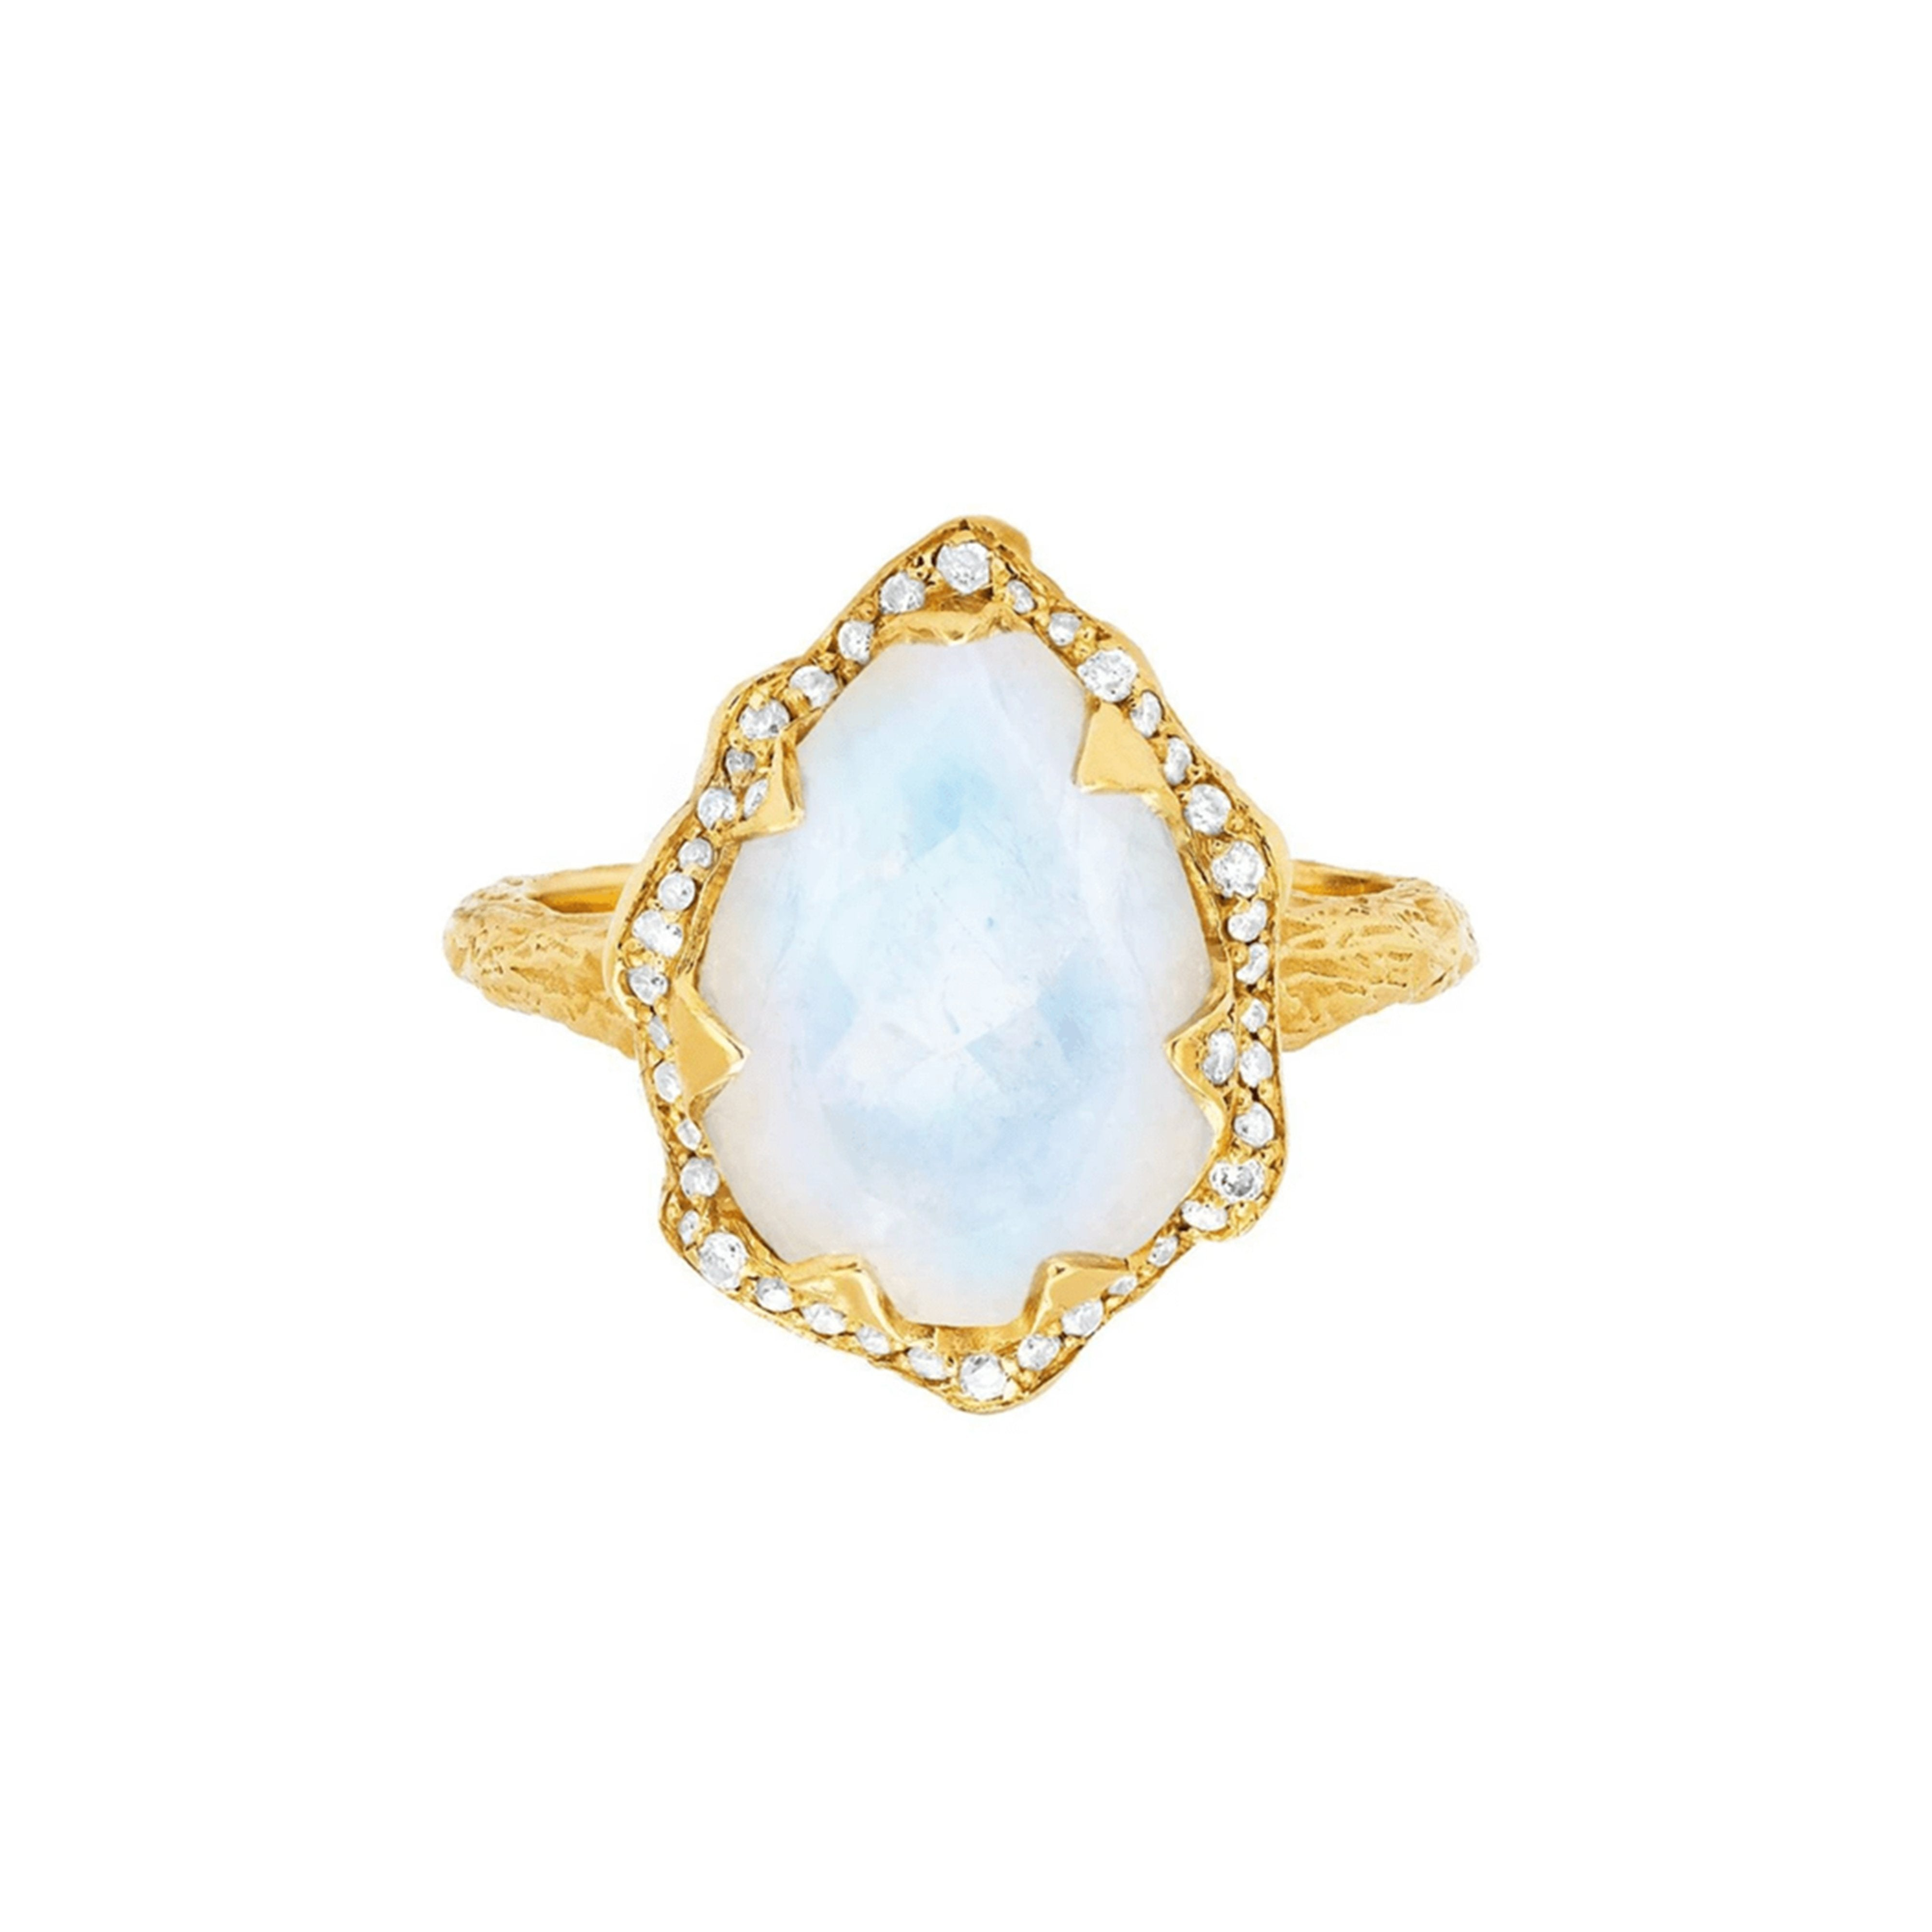 Queen Water Drop Moonstone Ring with Full Pavé Diamond Halo